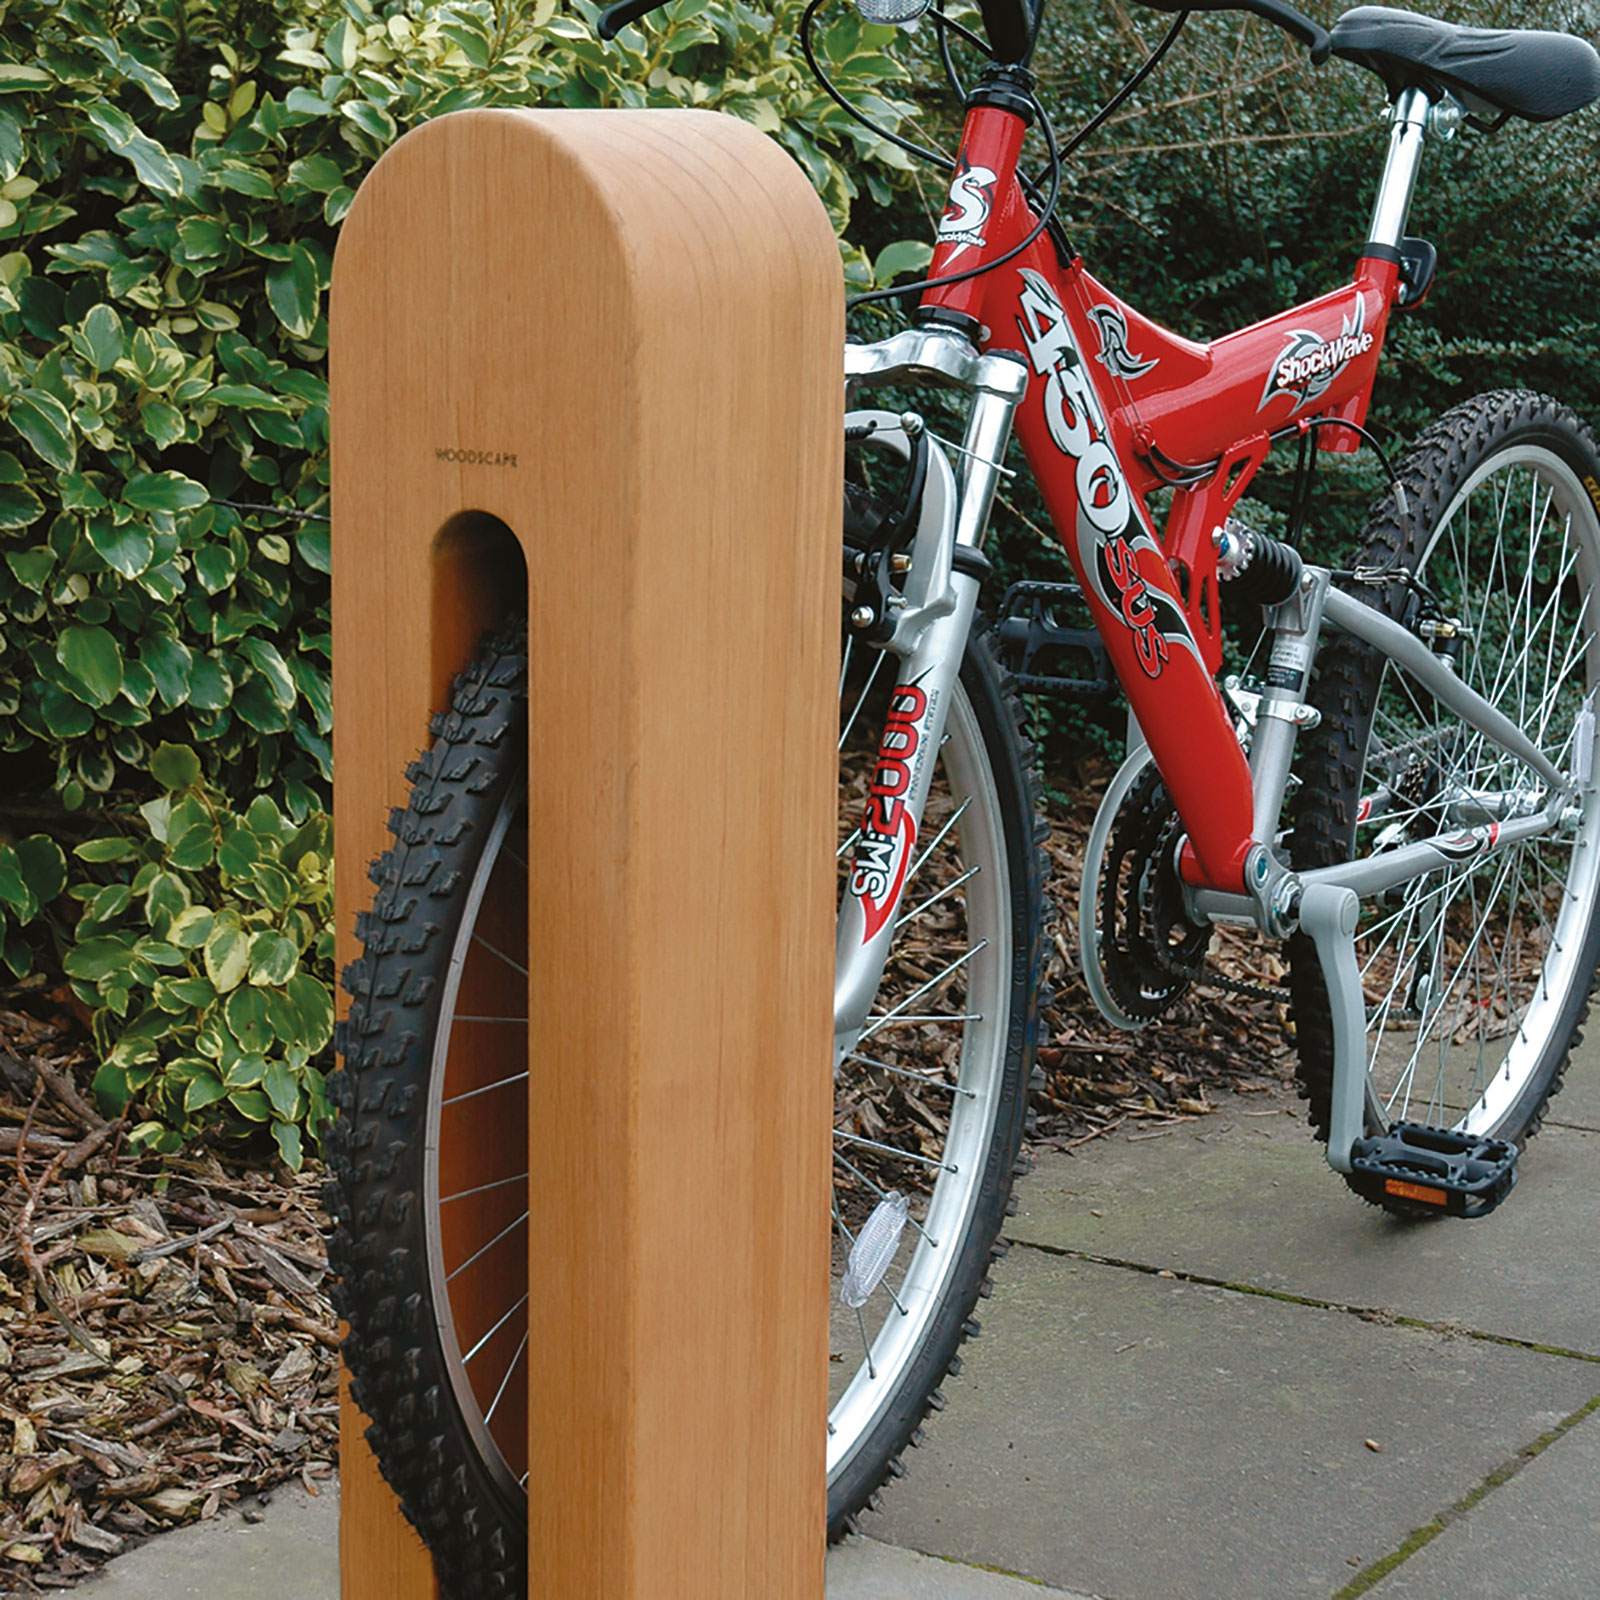 Cycle Parking Hardwood Timber Bollards